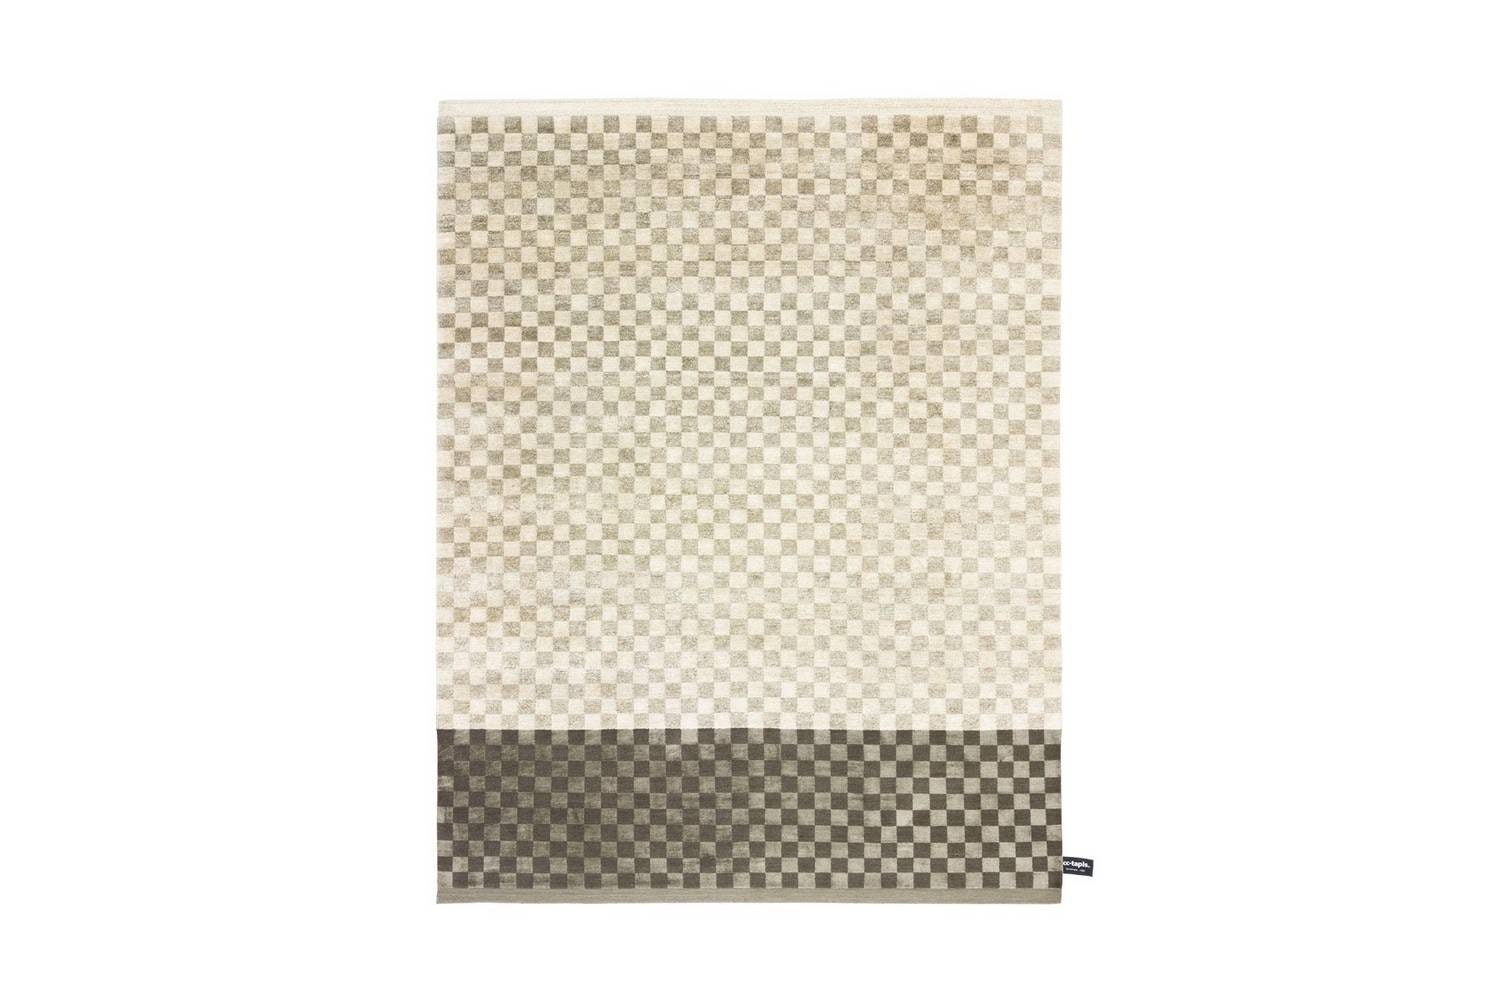 Dipped Damier Rug by Dipped Collection for CC-Tapis